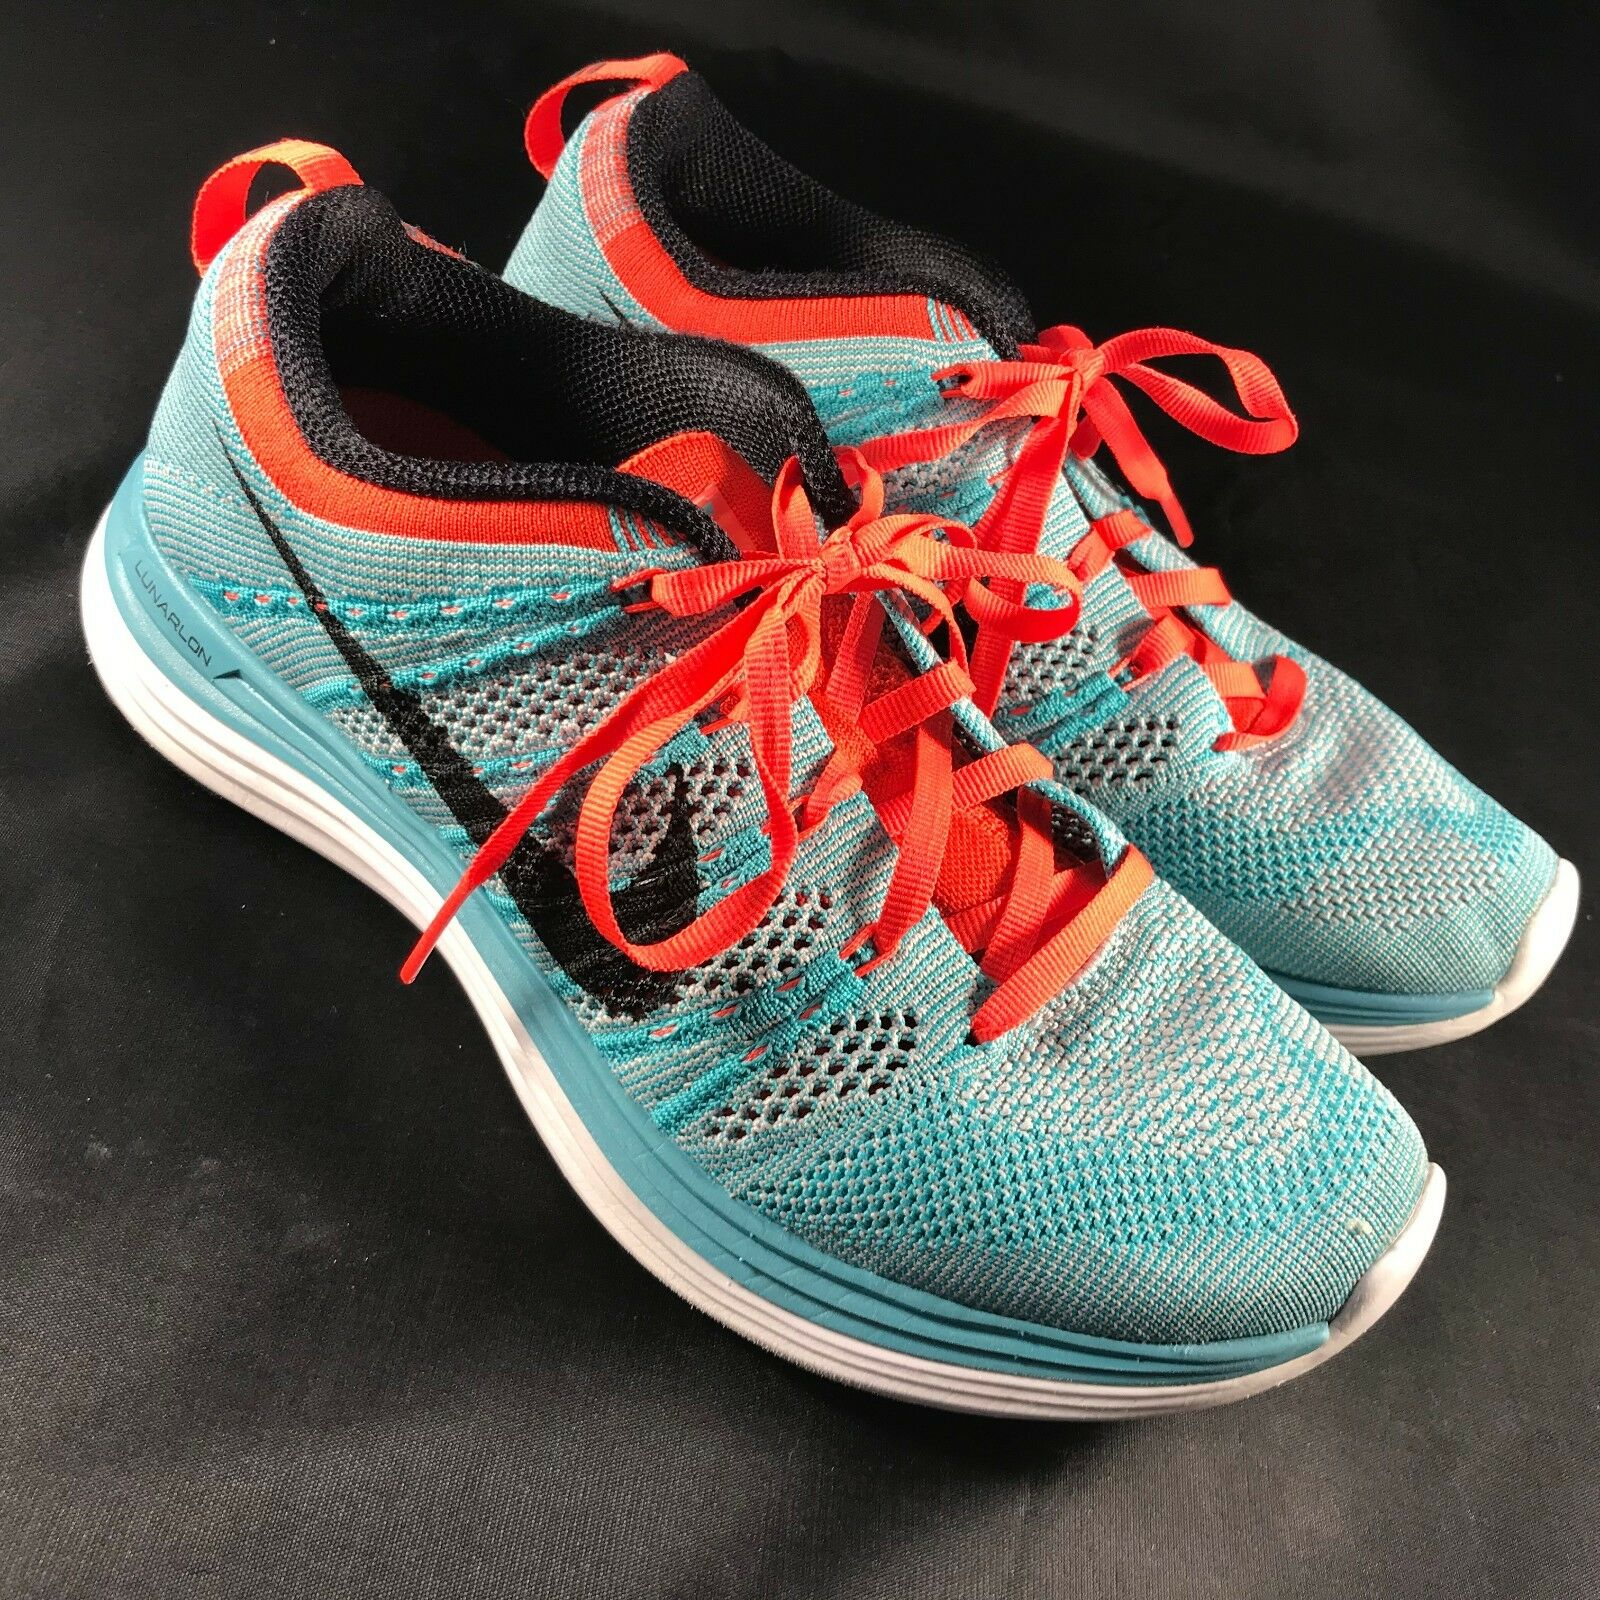 MINT Nike Flyknit Lunar +1 Women's Sz 6.5 37.5 EUR Teal Blue Coral Red